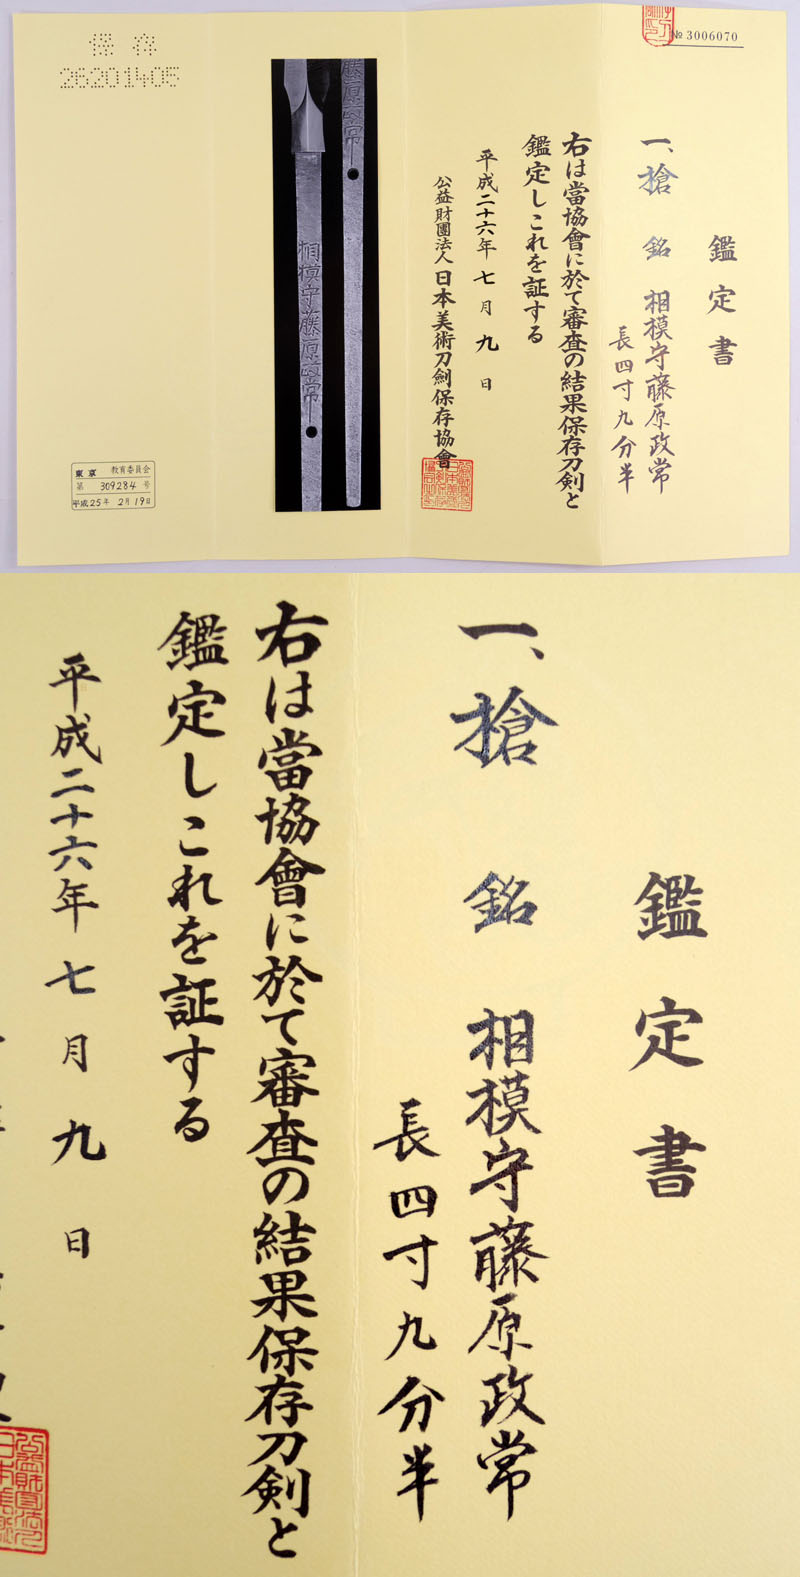 相模守藤原政常 Picture of Certificate